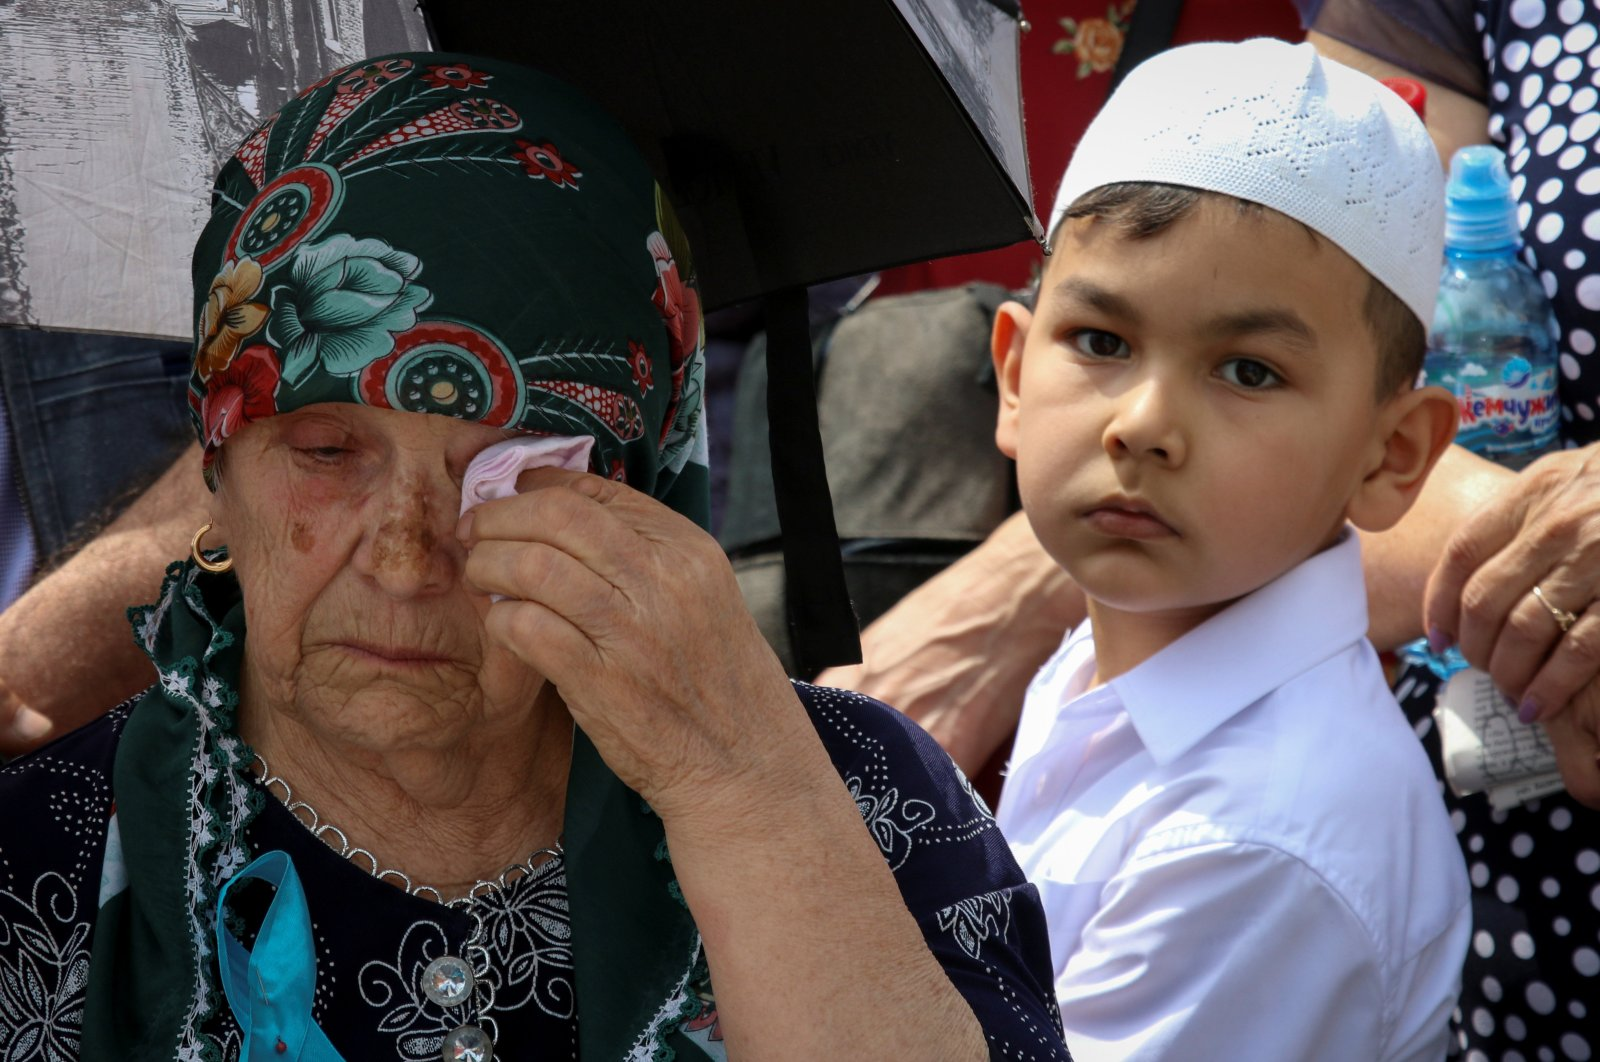 A woman reacts at a rally commemorating Crimean Tatars' mass deportations from the region in 1944, in the village of Siren in Bakhchisaray, Crimea, Ukraine, May 18, 2019. (Reuters Photo)